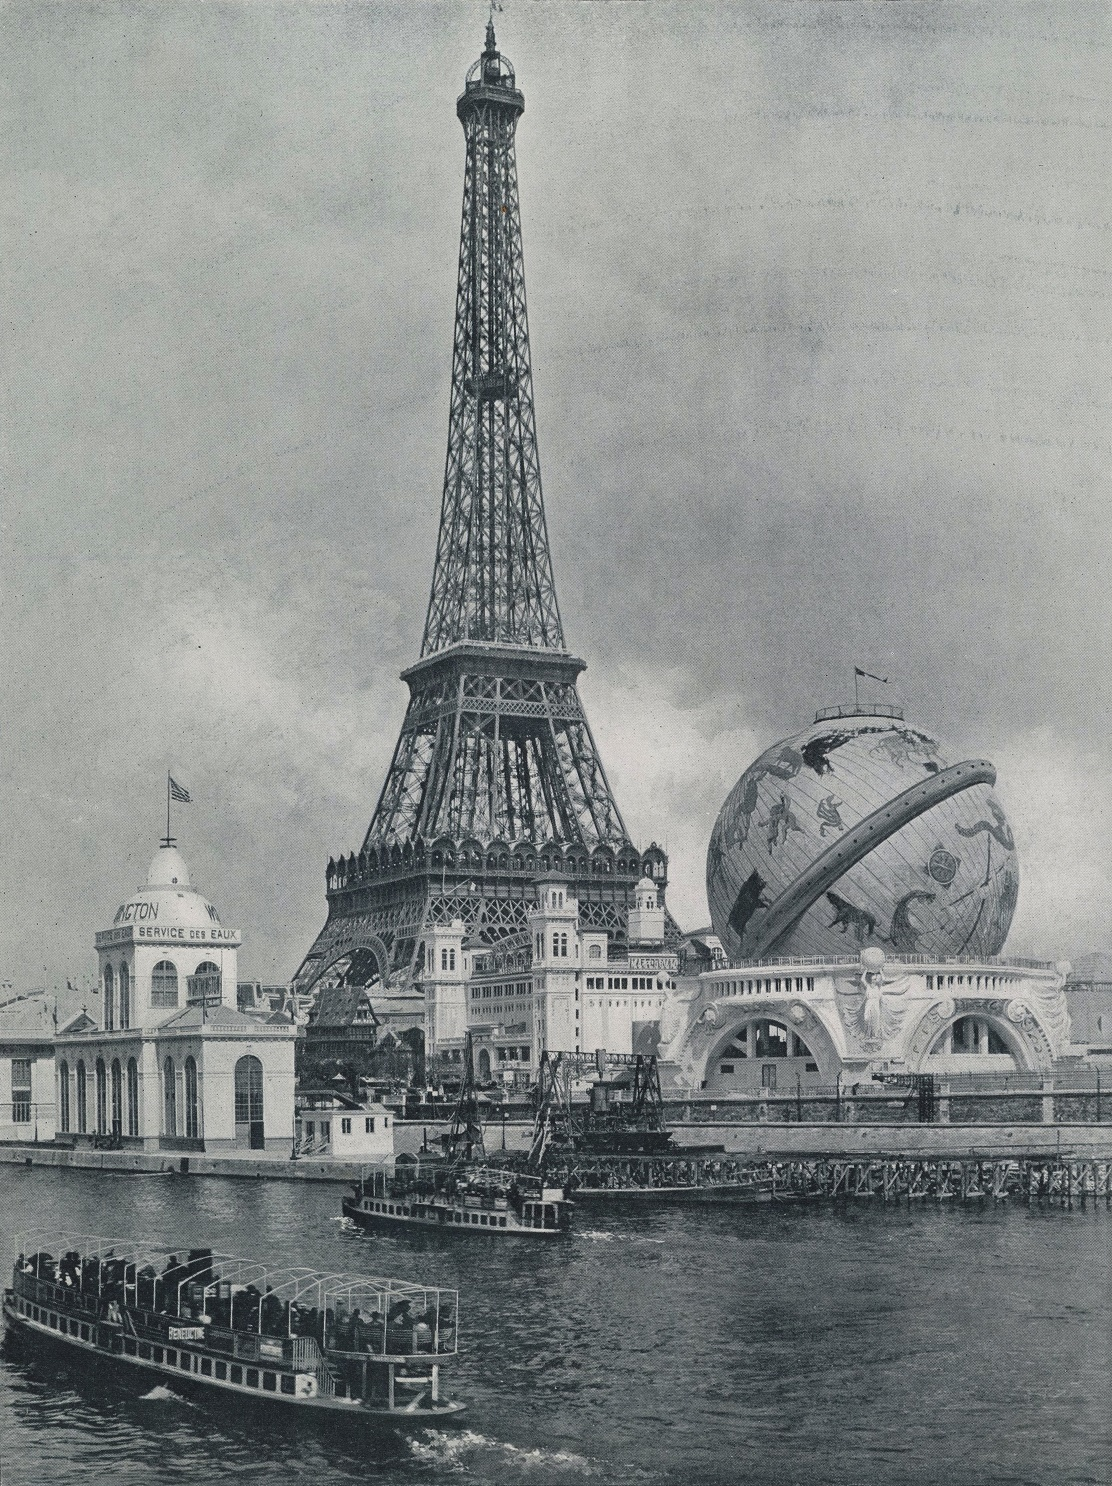 The Exposition Universelle of 1900 in Paris. Source: Google.